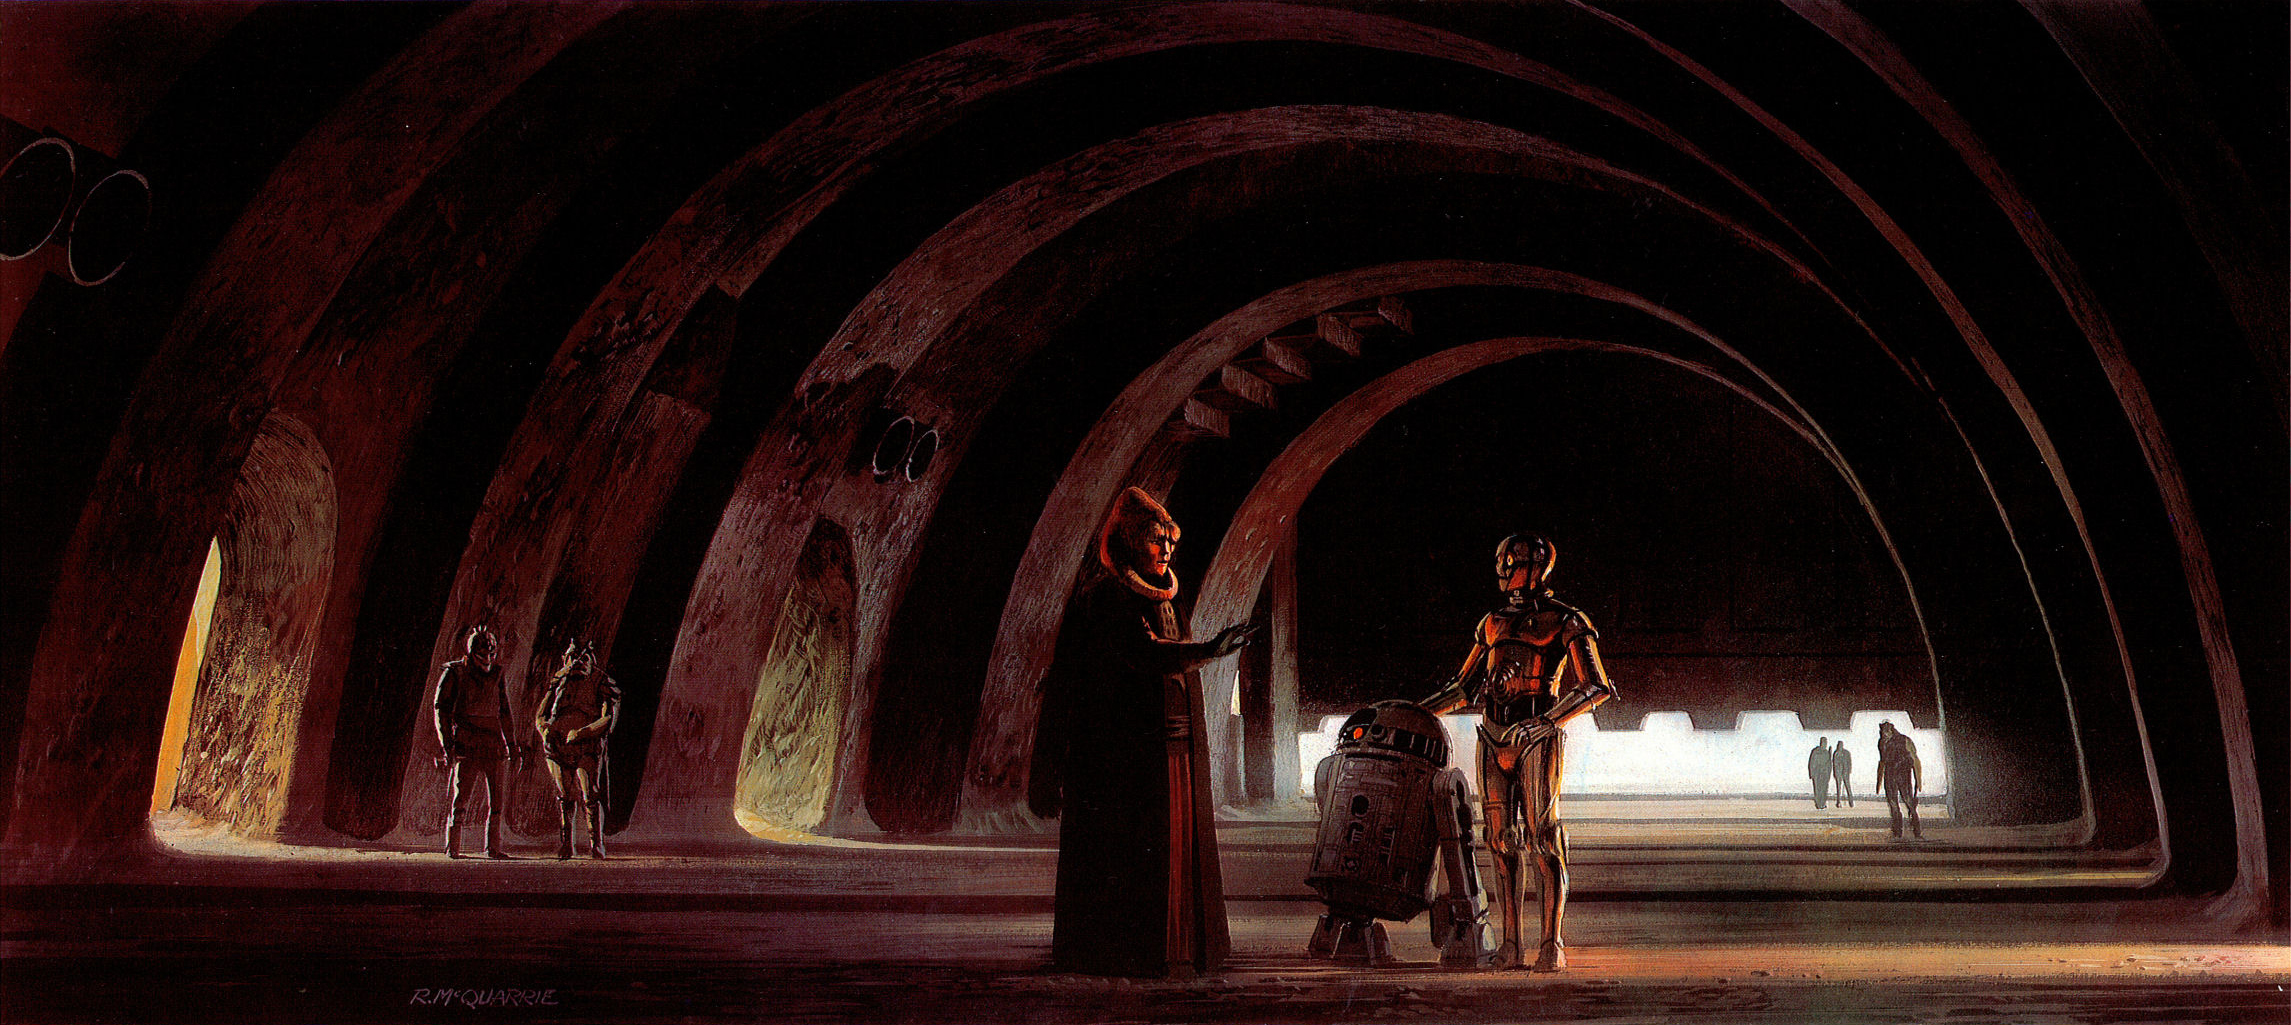 Droids in Jabbas palace hallway.jpg